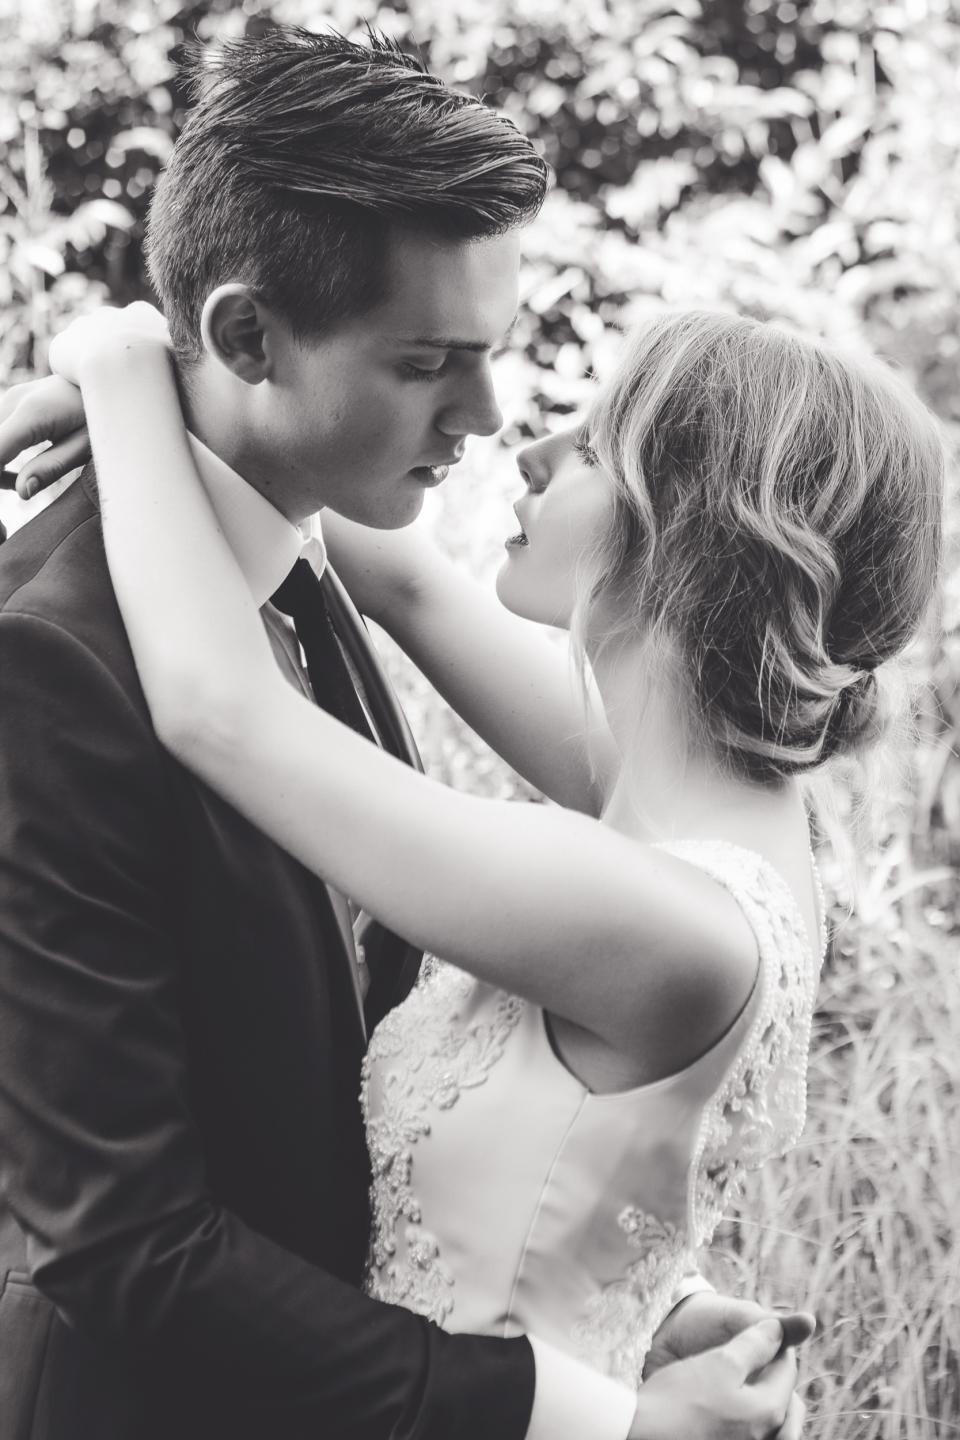 people, man, girl, bride, groom, wedding, celebration, gown, holding hands, kiss, love, black and white